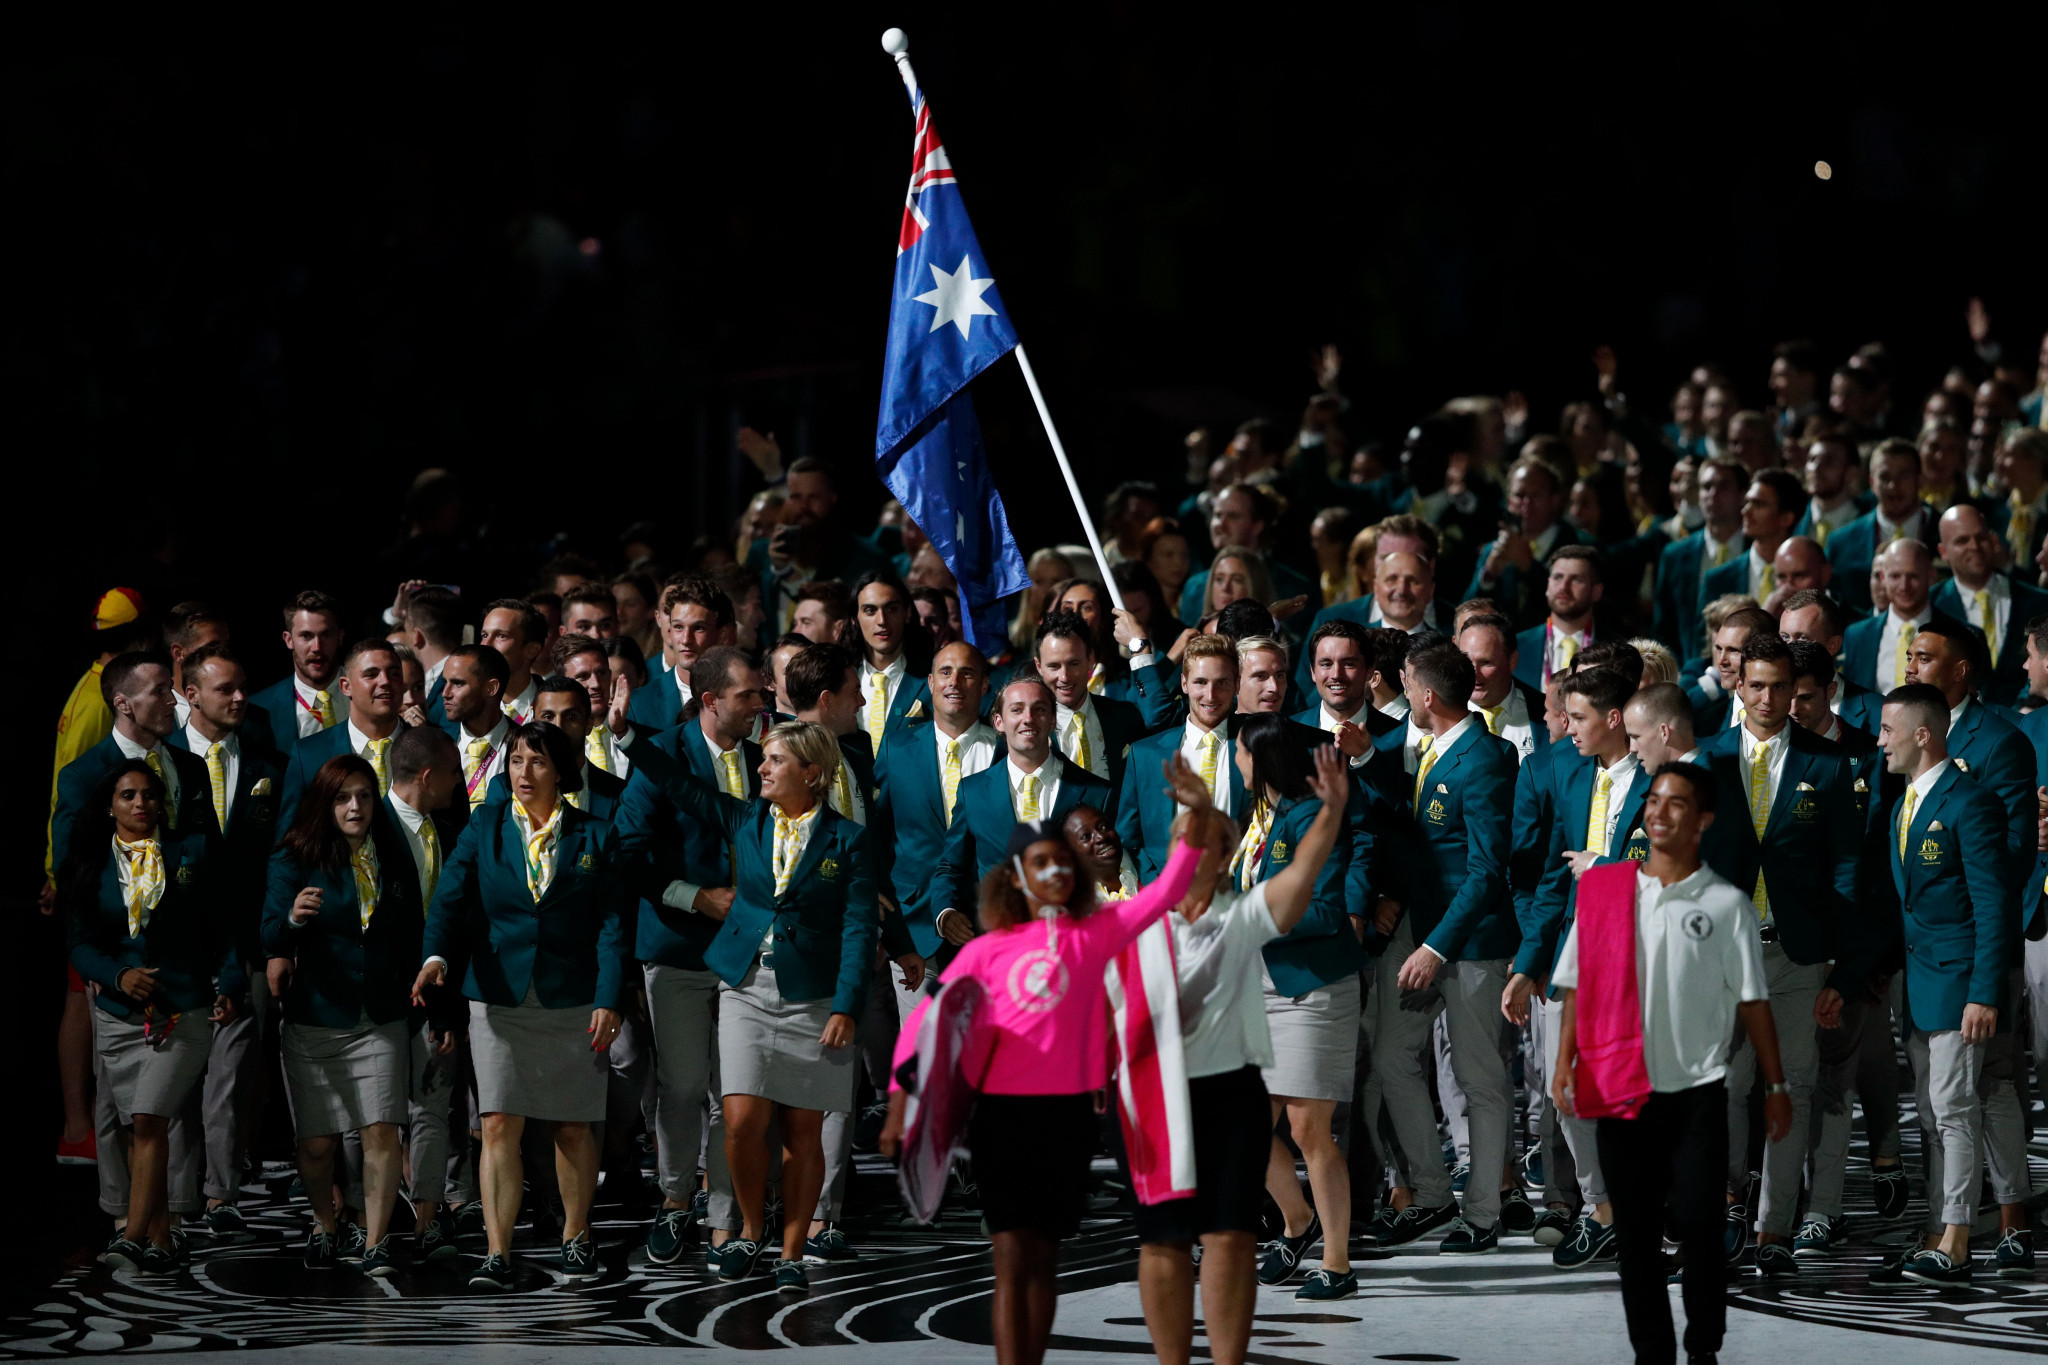 Australia's arrival was a highlight of the Opening Ceremony ©Getty Images